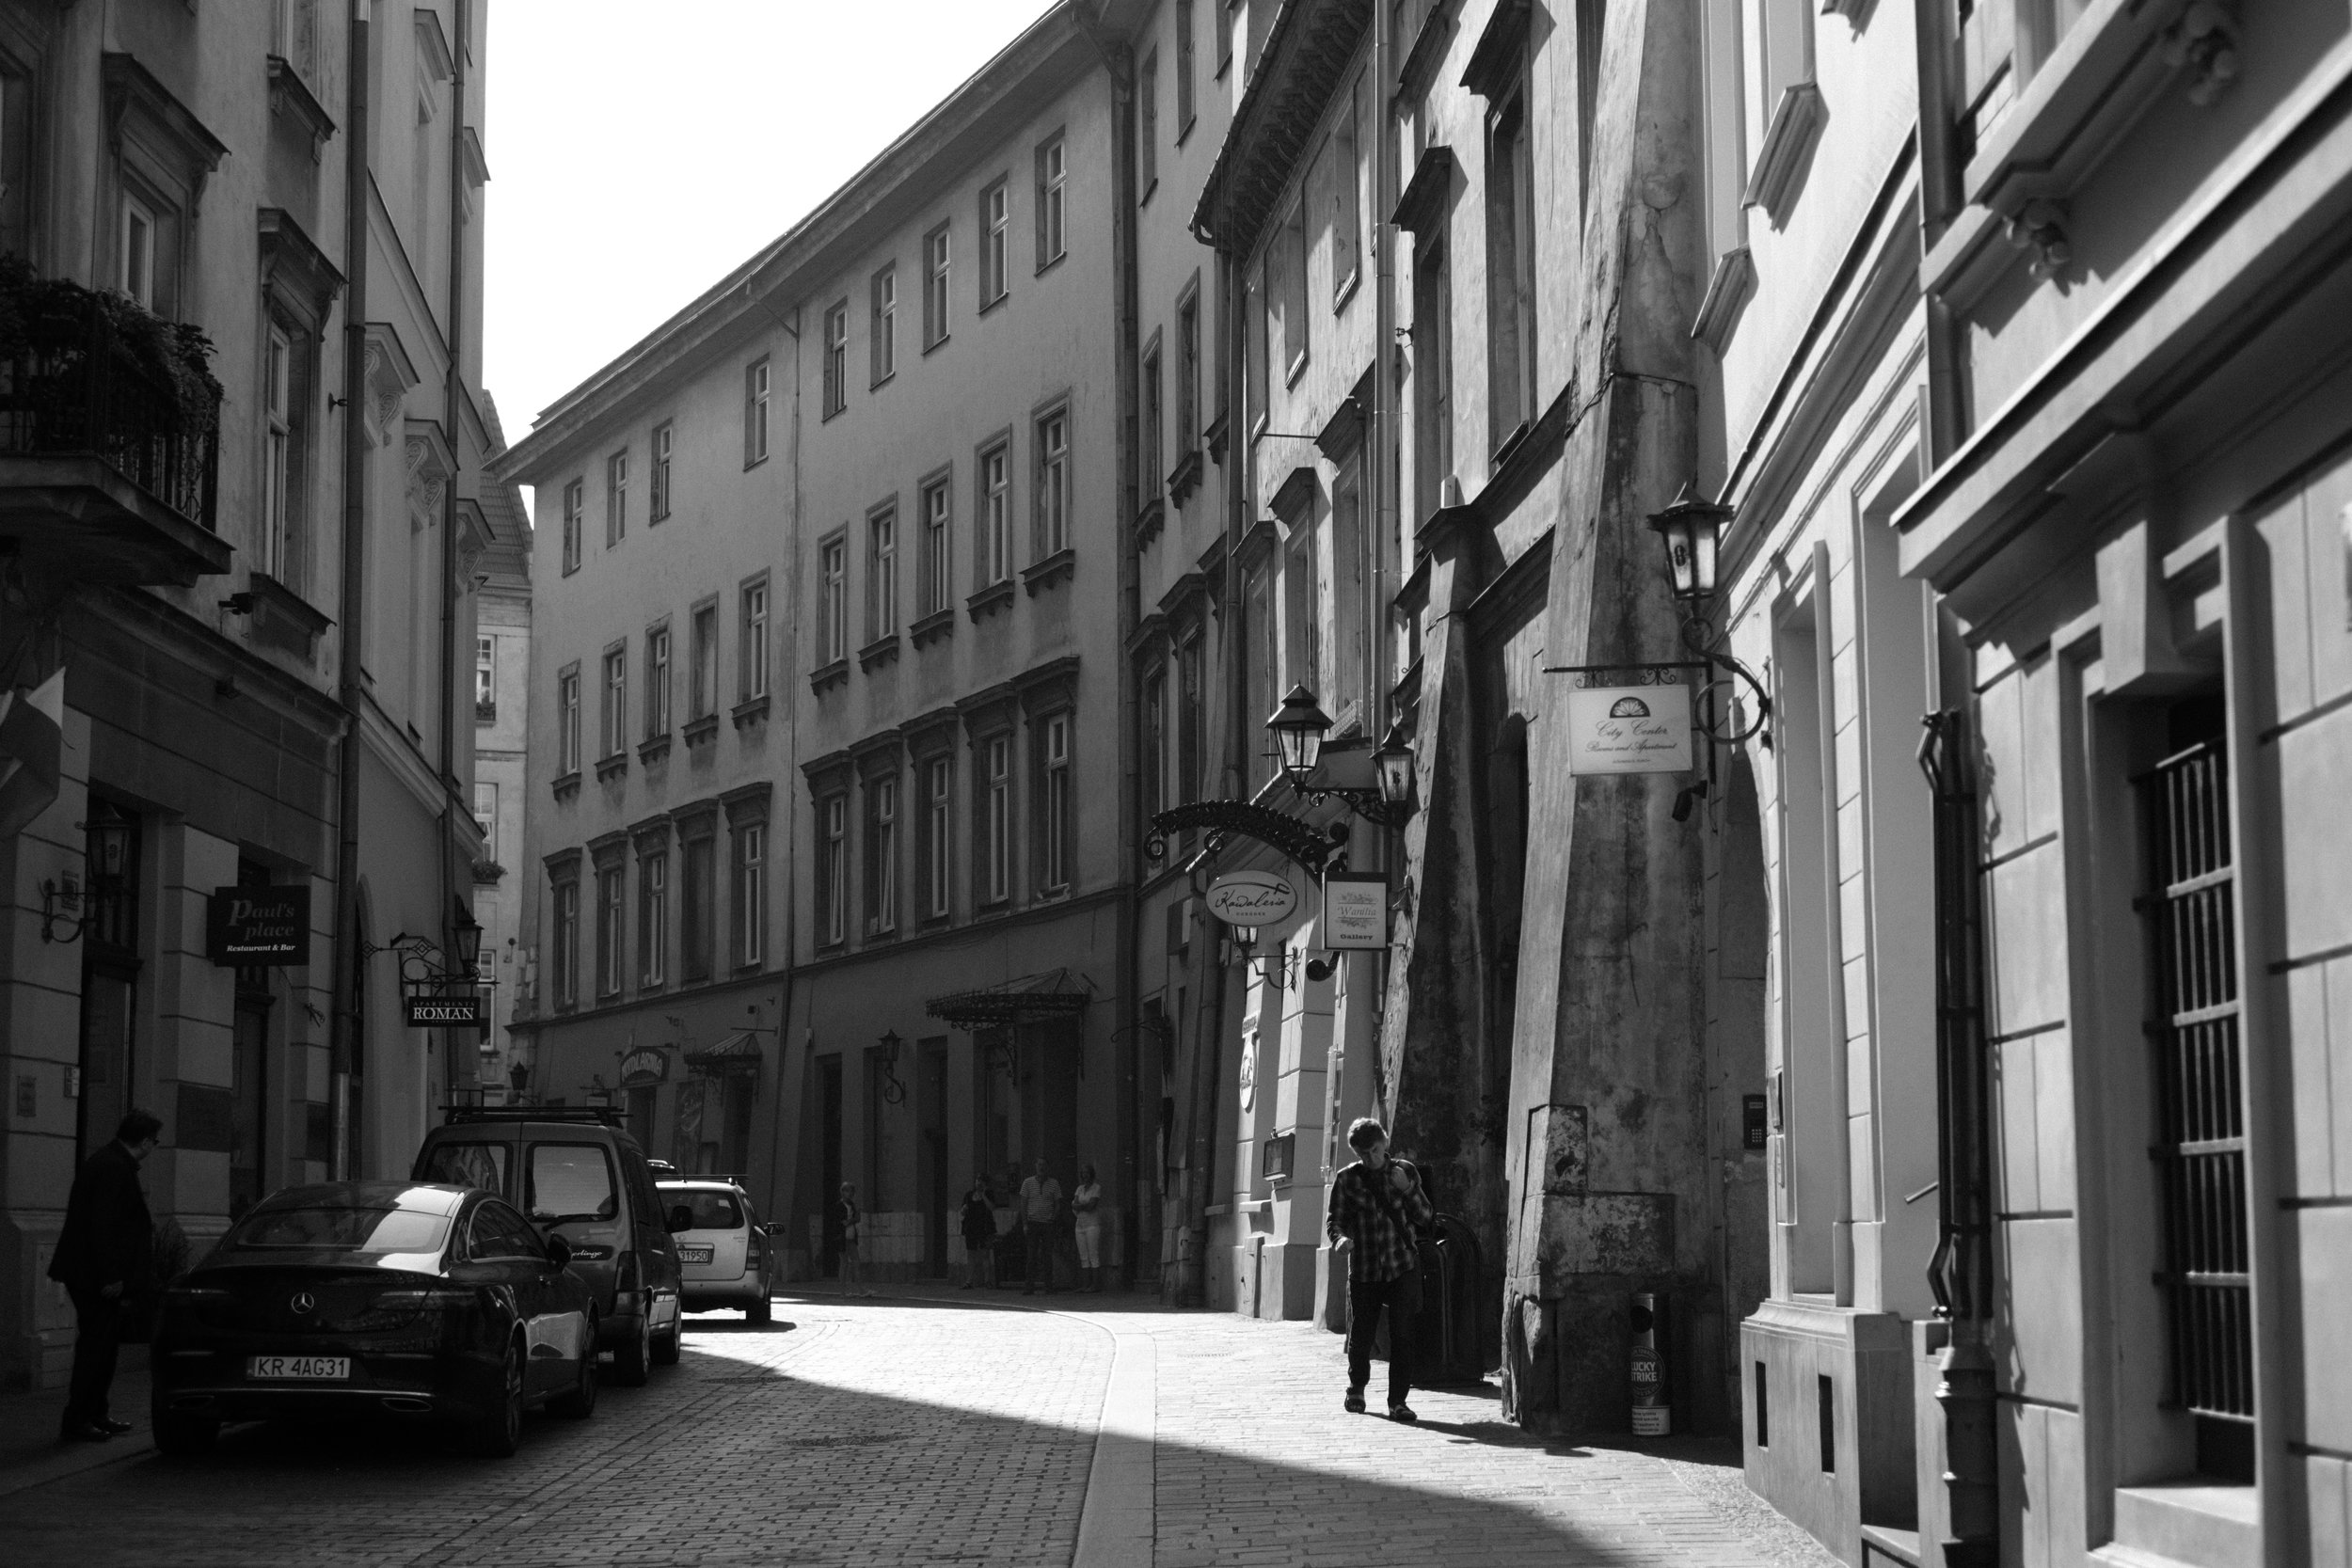 Morning scene in a narrow street of the Old Town in Krakow Poland